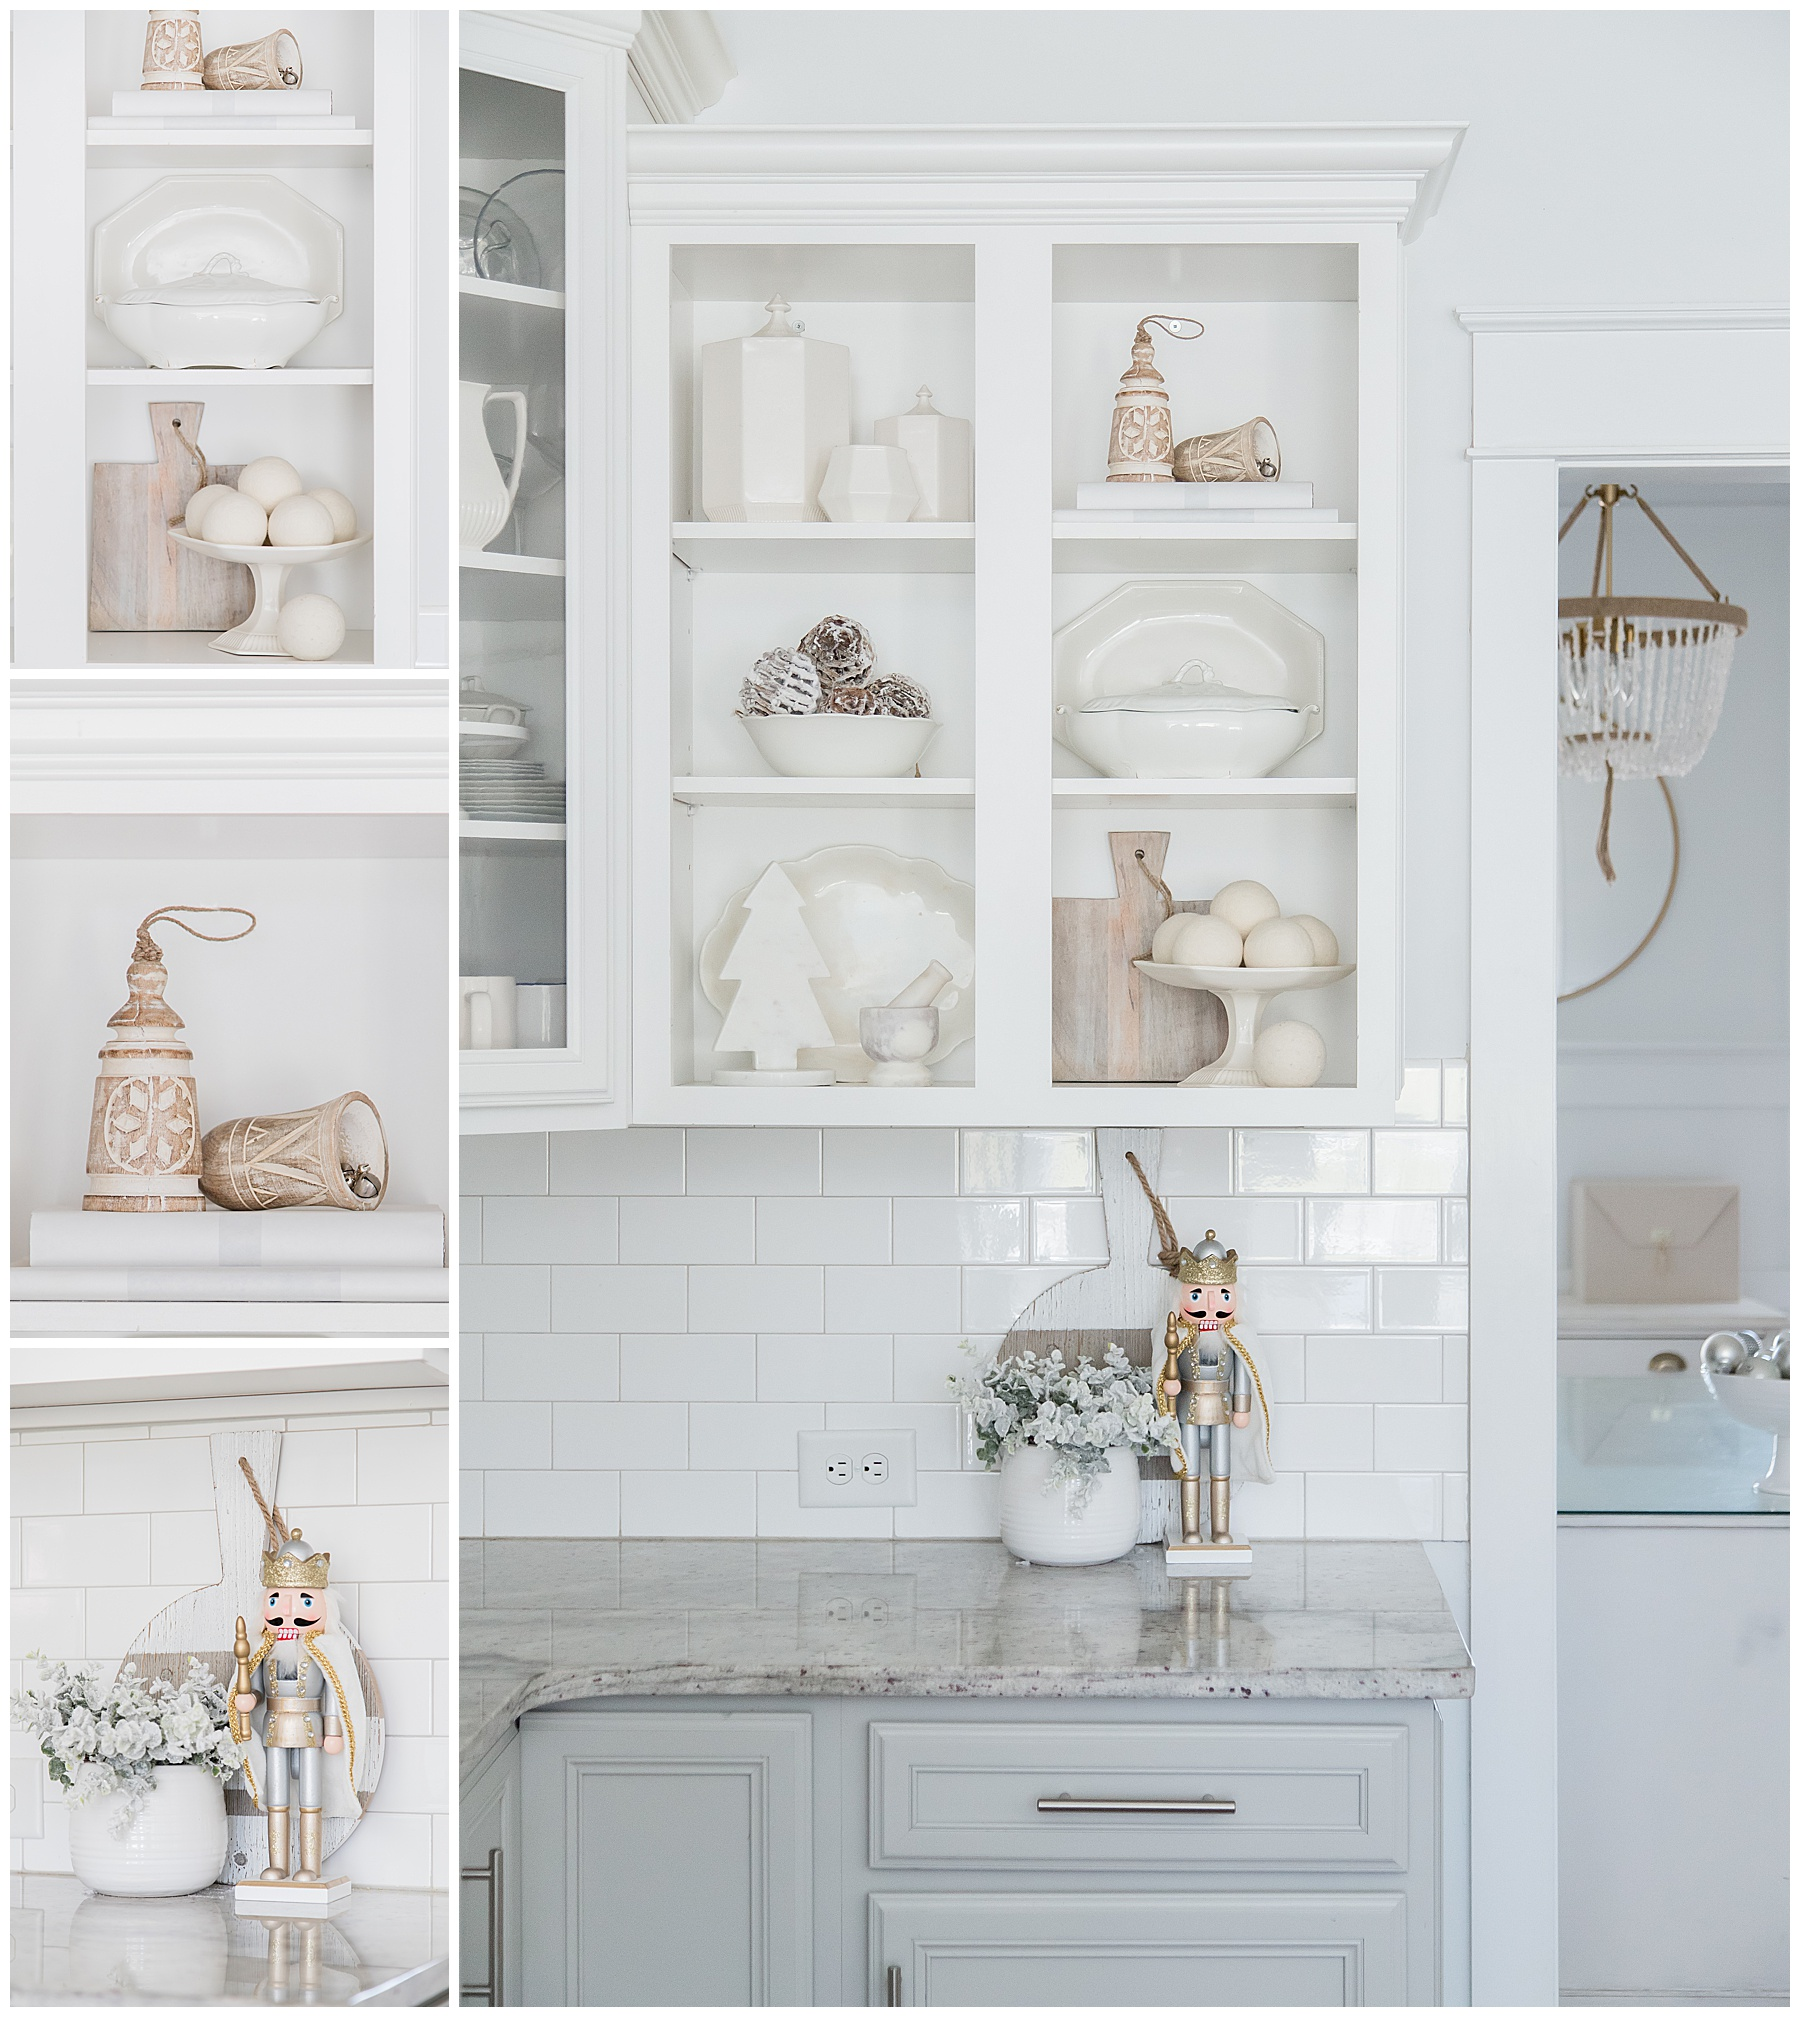 Love this beautiful open shelving in this white and gray kitchen. | AE Home Style Life | #openshelving #whitekitchen #graykitchen #kitchendecor #christmasdecor #whitechristmasdecor #nutcracker #whitecabinets #graycabinets